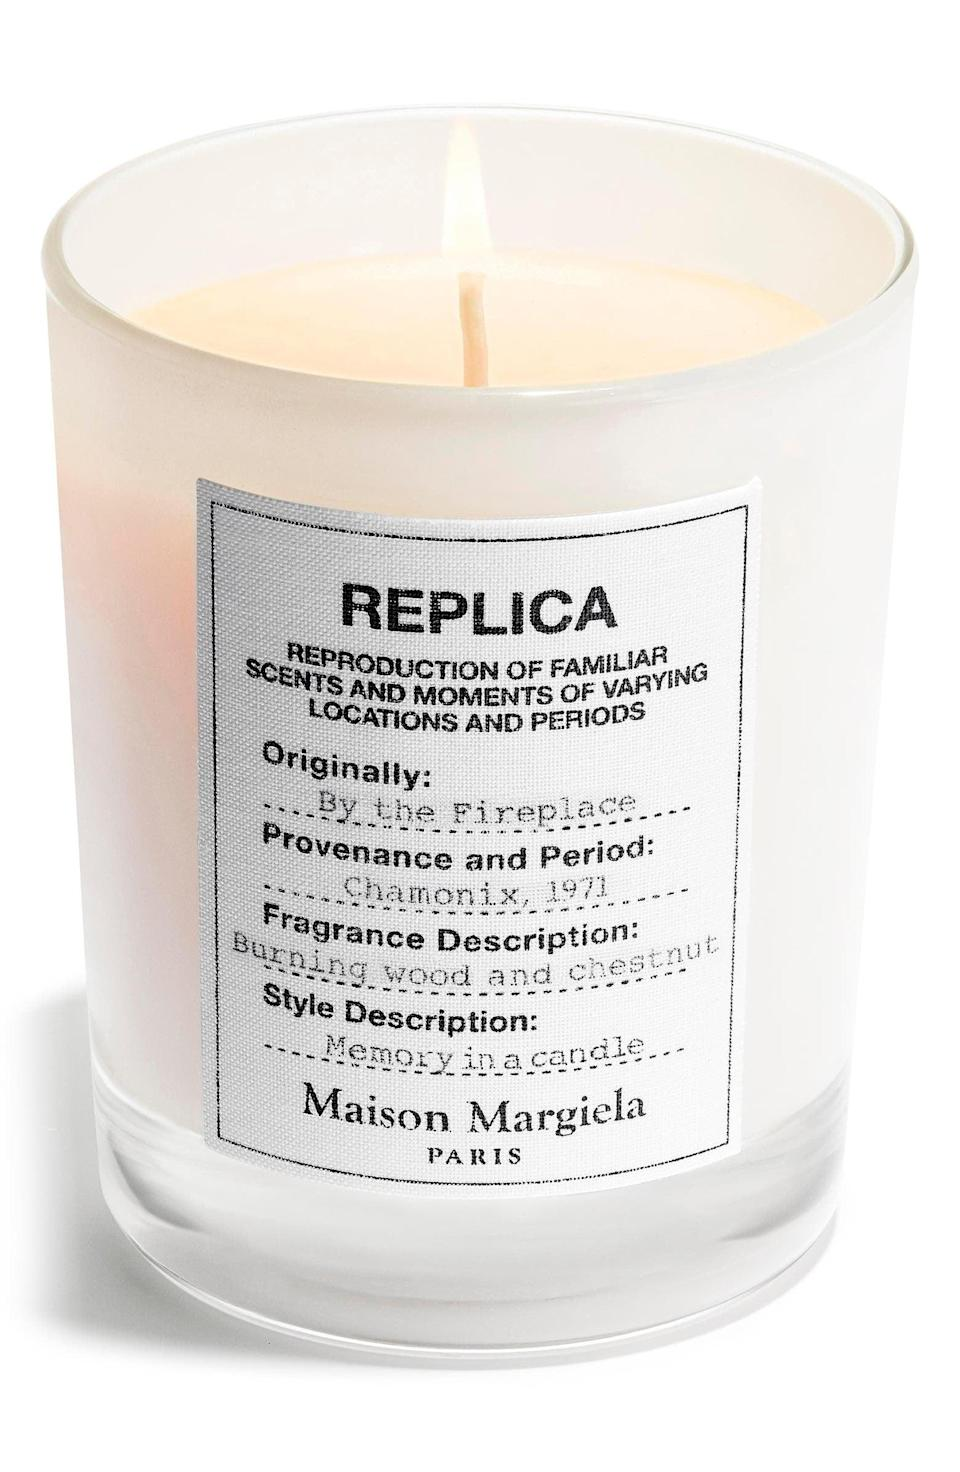 <p>To truly embrace those cozy vibes, set the mood with this luxurious <span>Maison Margiela Replica By the Fireplace Candle</span> ($62). It has notes of pink pepper, orange flower petals, clove oil,chestnut accord, guaiac wood oil, cade oil, vanilla accord, Peru balsam, and cashmeran.</p>